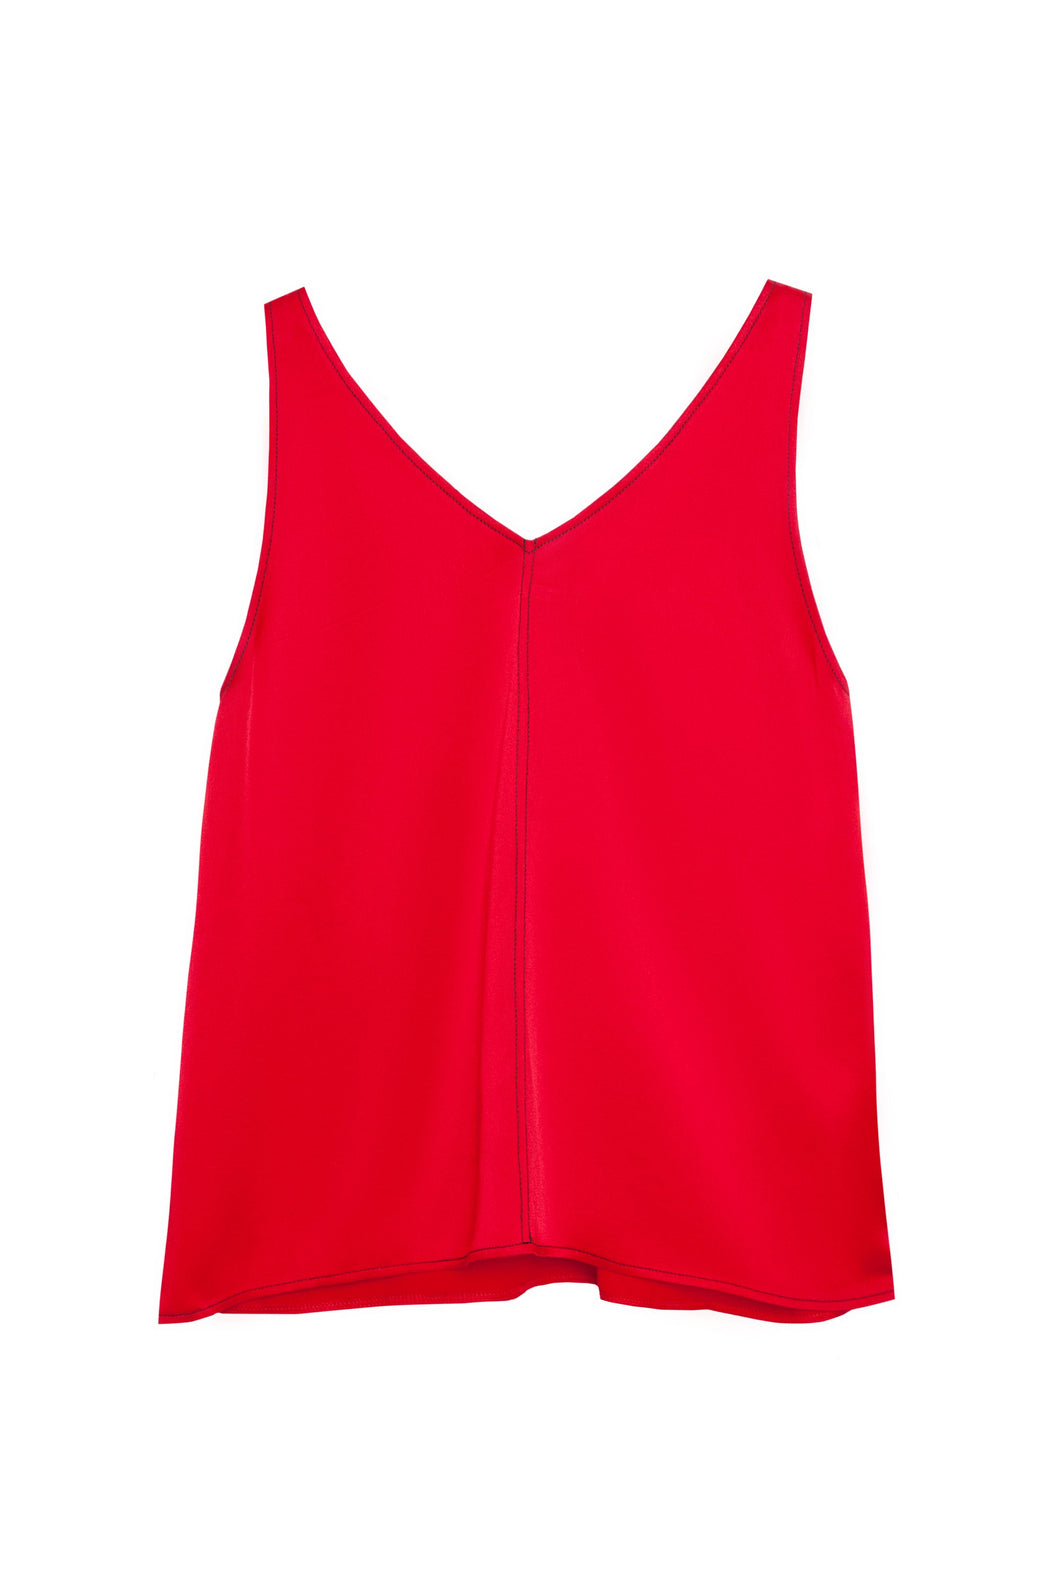 50% OFF  V- neck top with accent stitching red